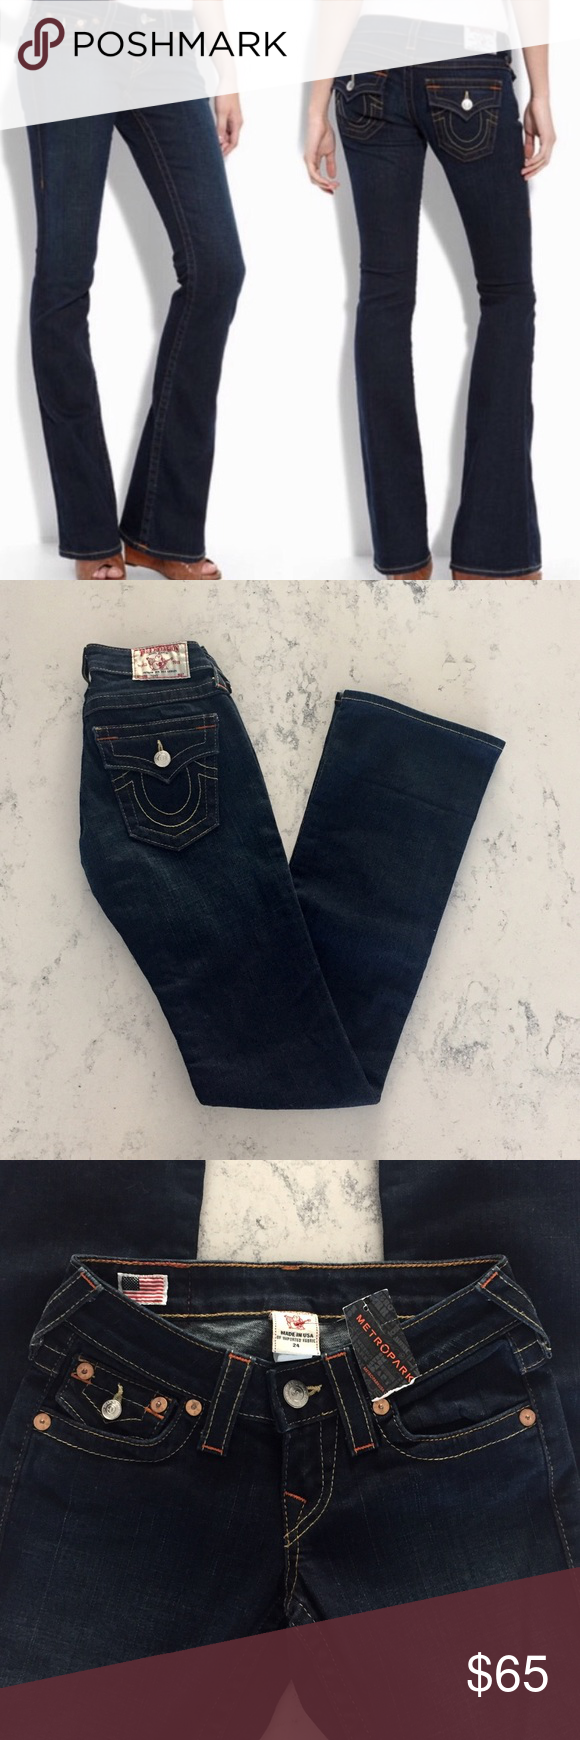 True Religion Tony bootcut jeans in dark lonestar True Religion presents a streamlined take on your wardrobe standby. Tony cut in the lonestar (medium dark blue) wash features fading on front thighs and seat for a sleek, slimming look. Button-flap back and coin pockets feature True Religion signature horseshoe stitching. Low, hip-slung rise is contoured to eliminate gapping. Slim through hip, thigh, and knee; breaks below knee into flattering, dramatic boot-cut. Five-pocket style. Button/zip…